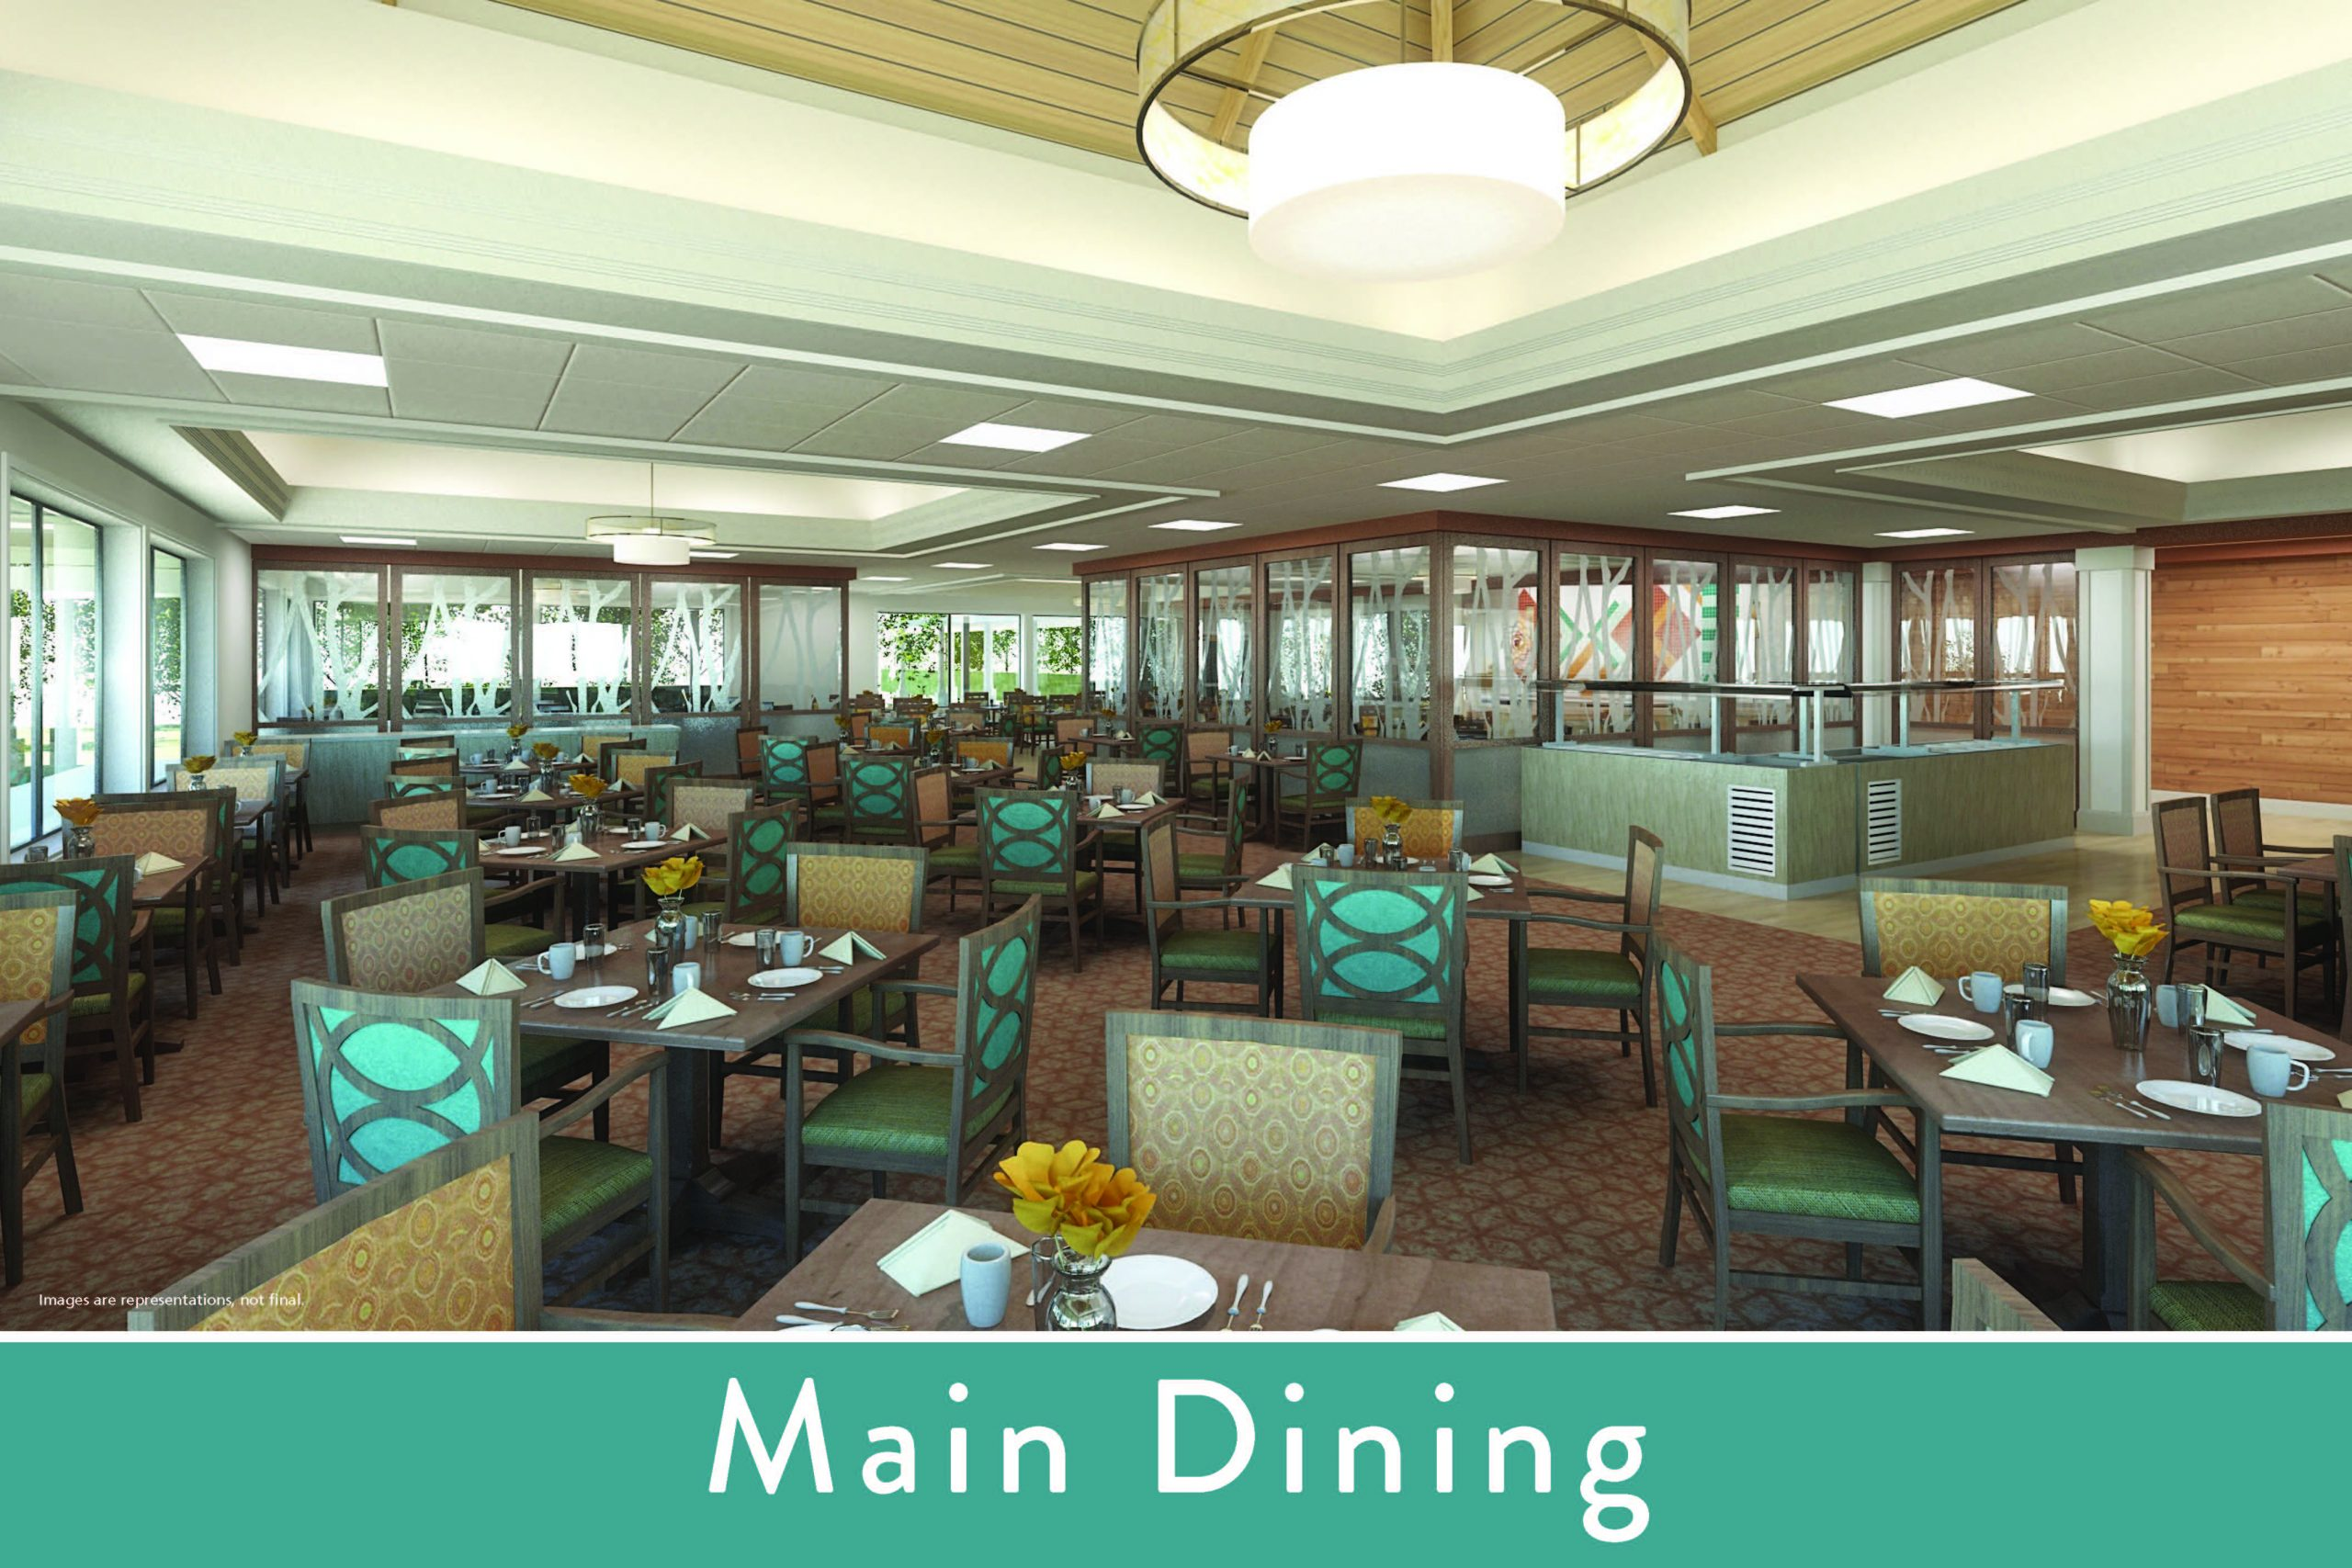 Beautifully refreshed, seated restaurant-style dining with wrap-around windows overlooking the rose garden and oak tree walking path